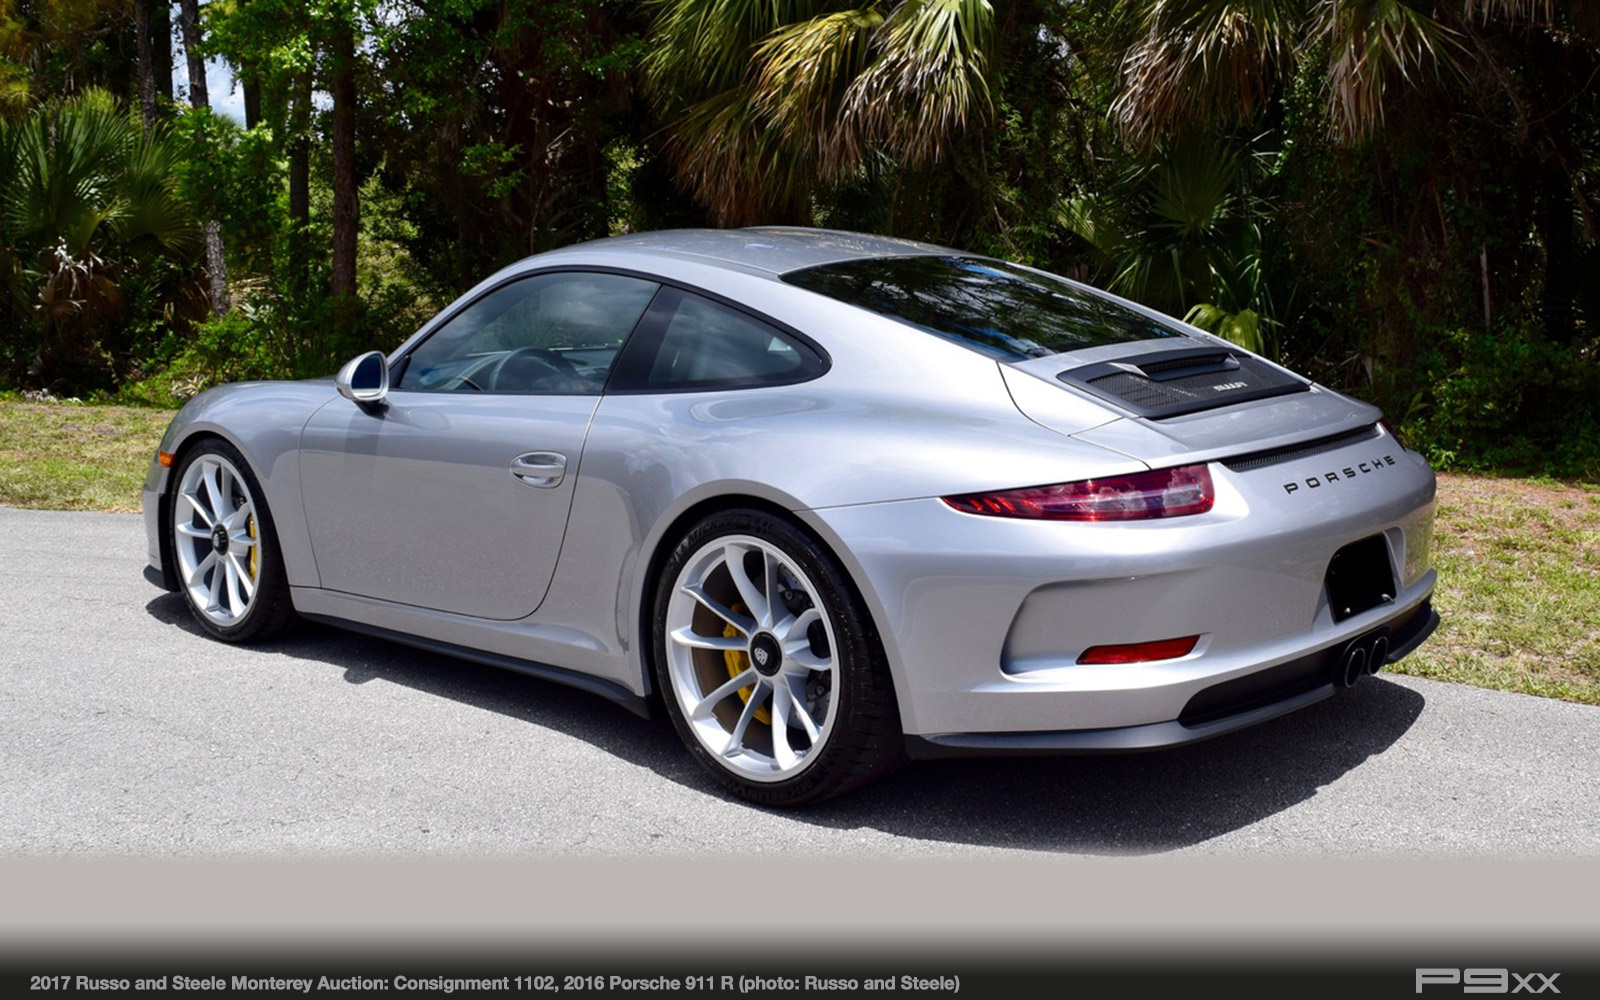 Sleeper 911 r set for russo steele monterey auction p9xx critics may call this the most boring spec 911 r ever built wed argue its the undercover 911 r likely only the serious porschephiles will recognize it sciox Images